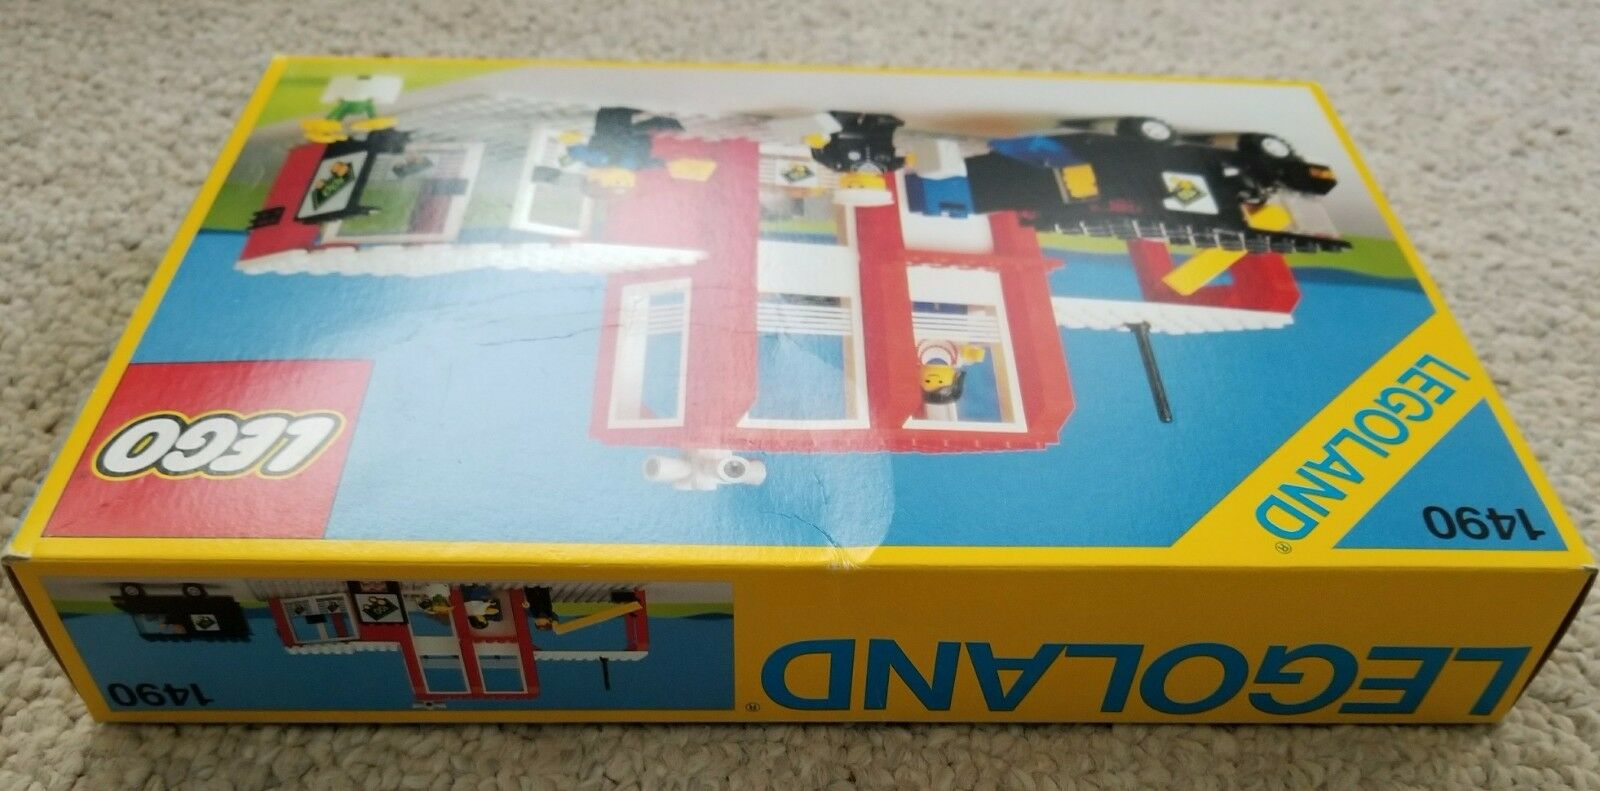 Lego 1490 Vintage and and and Rare BANK - 1980's - Brand New in Opened Box 2b710a